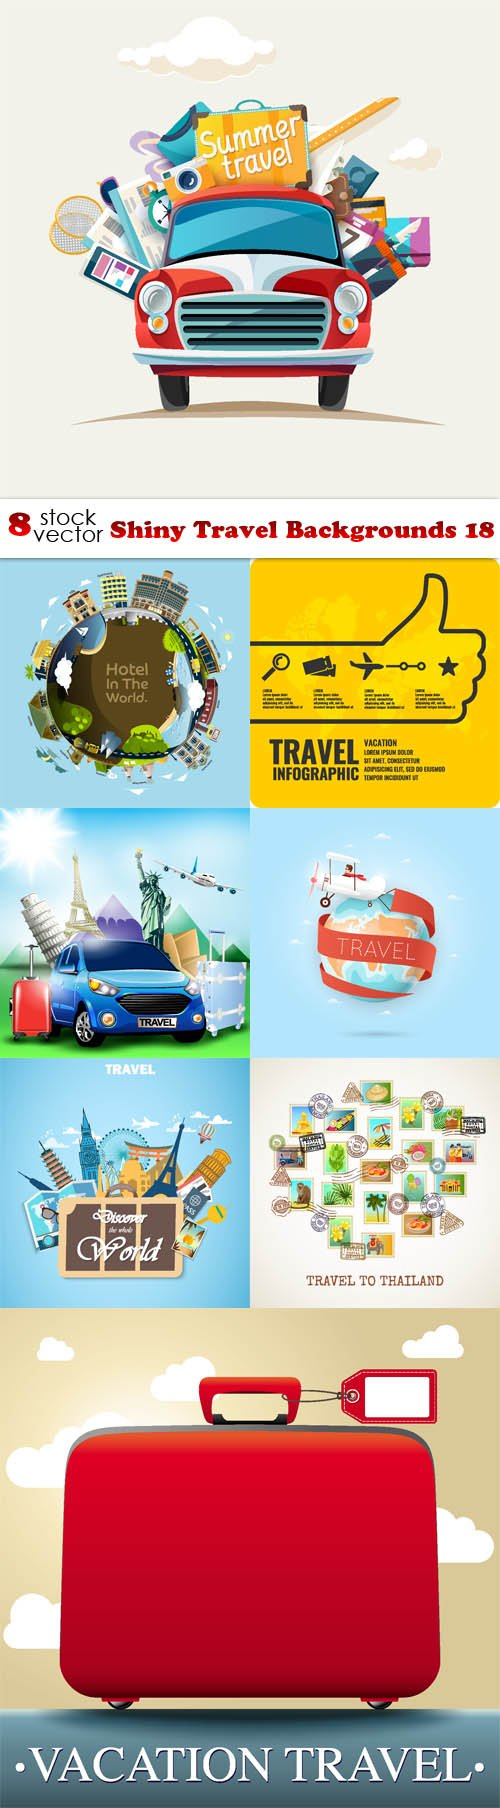 Vectors - Shiny Travel Backgrounds 18